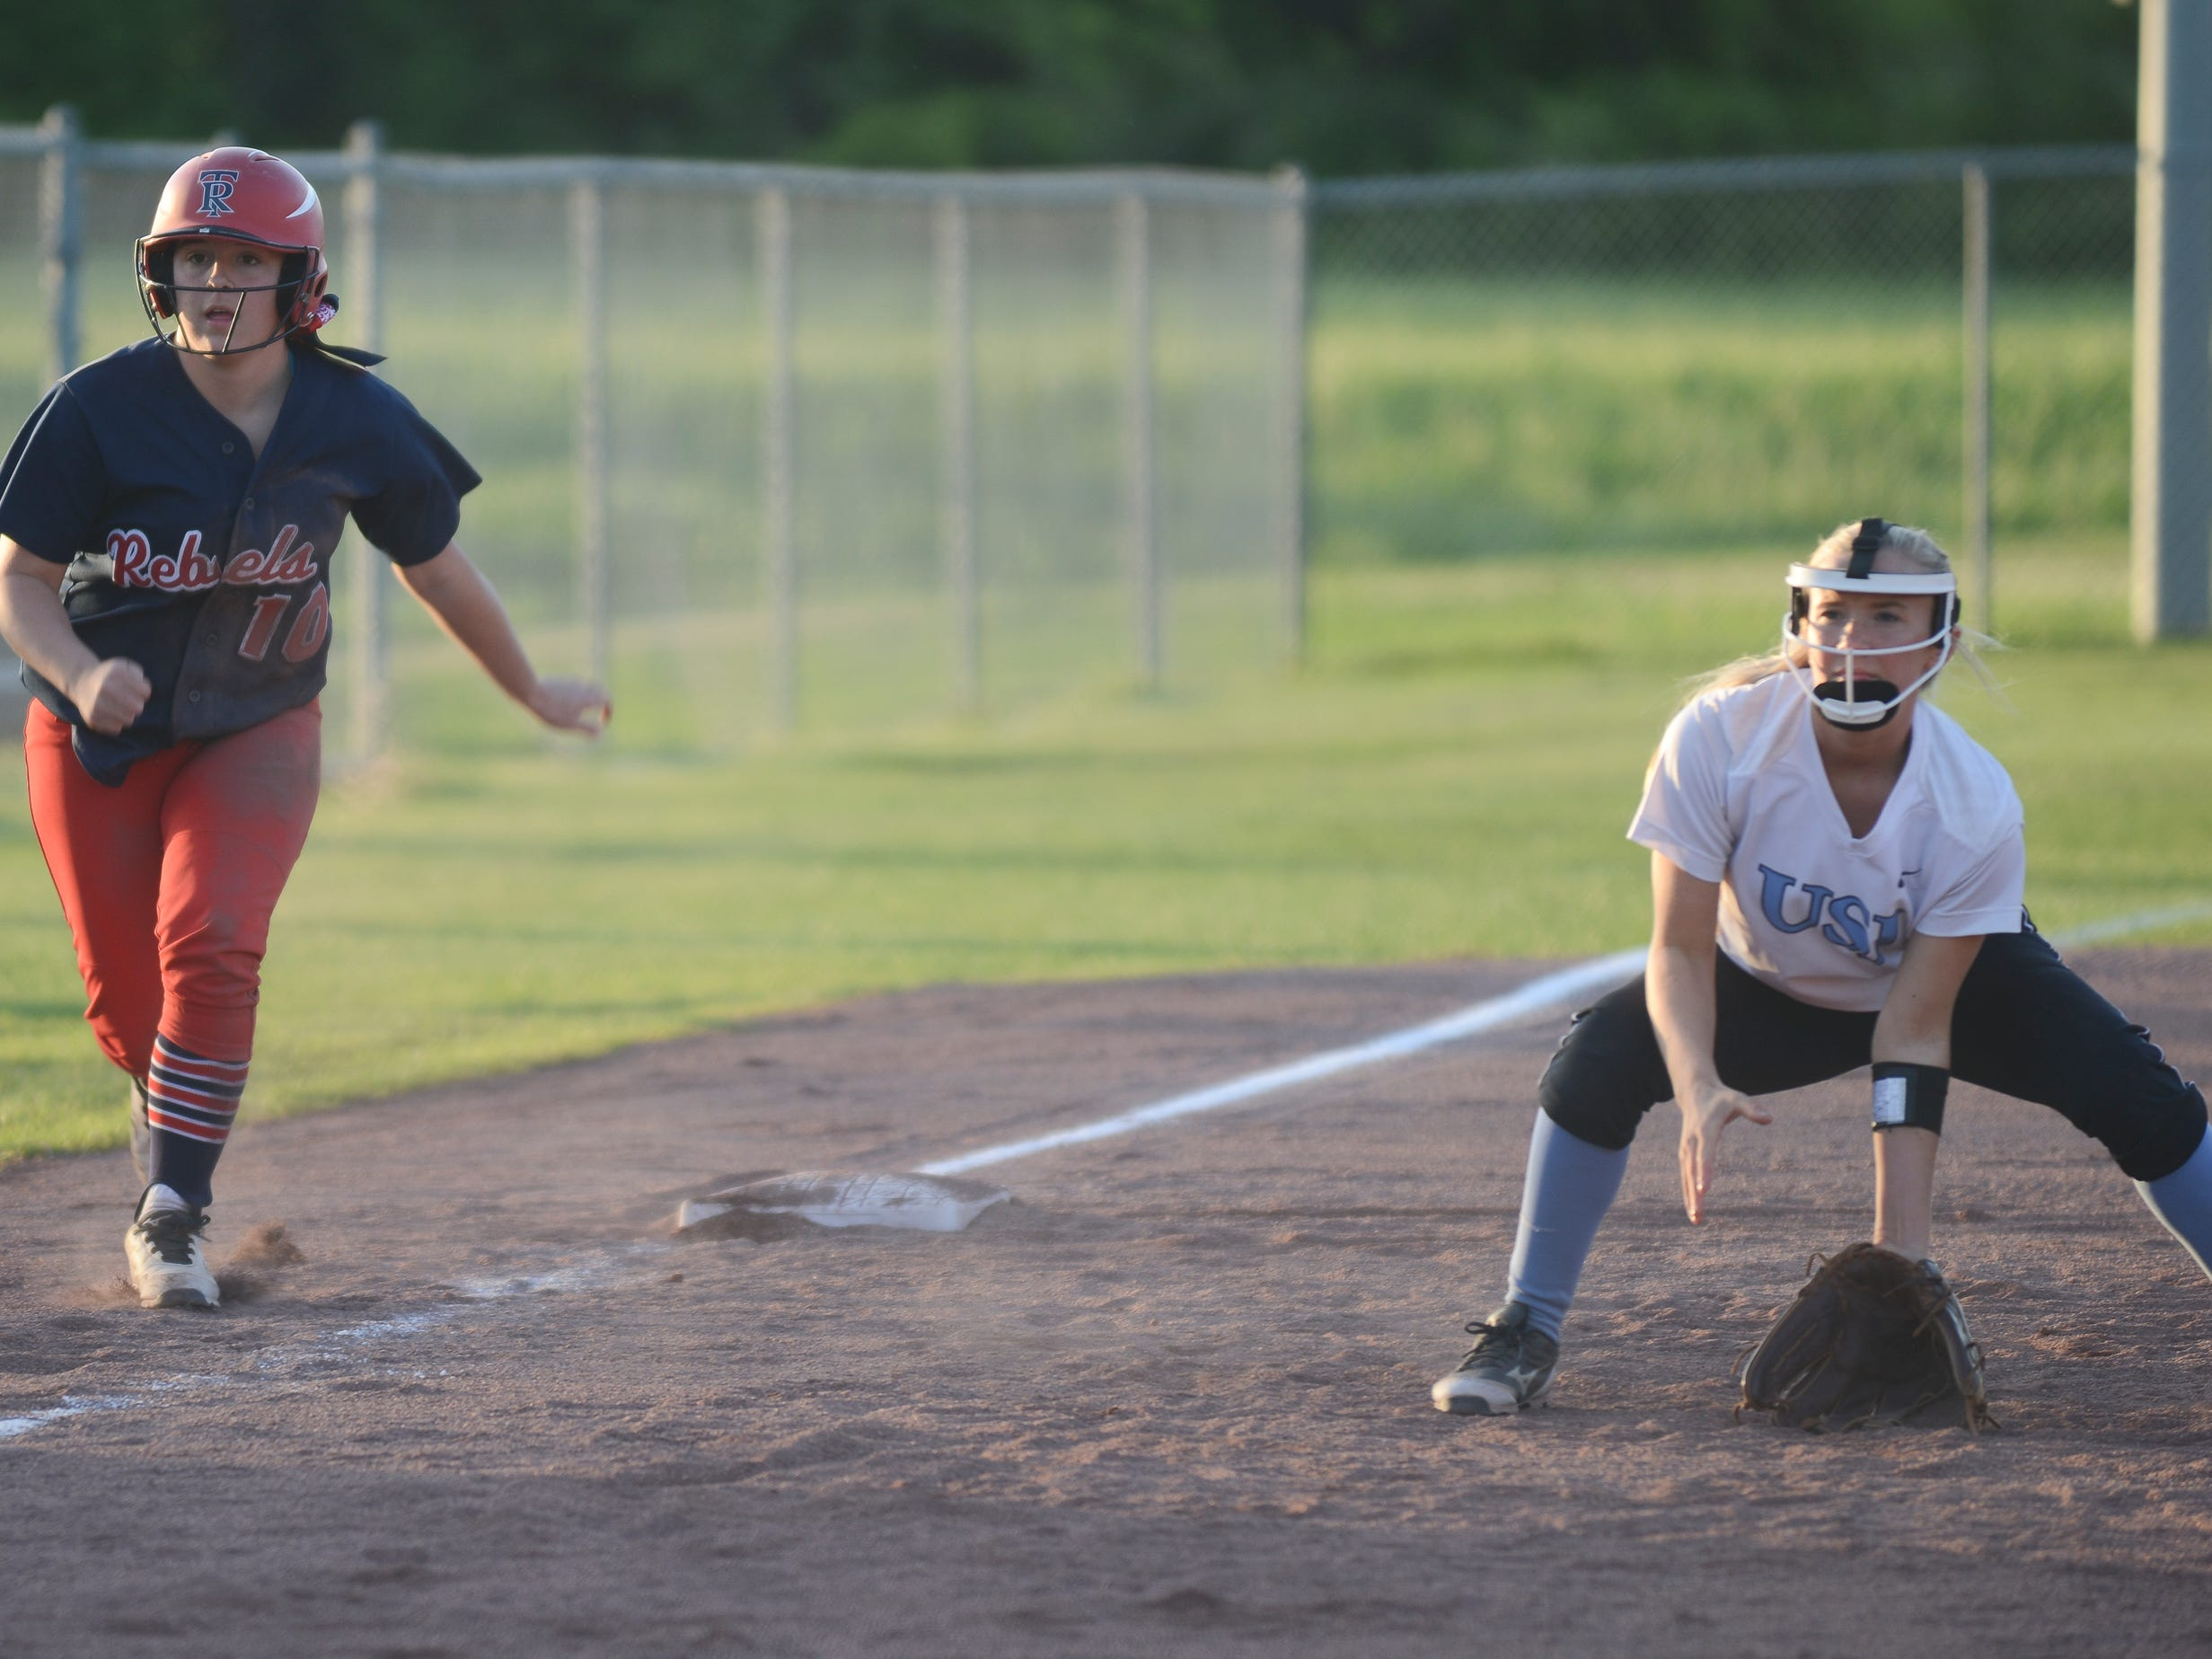 USJ's Molly Dowland gets ready to scoop a groundball with a Tipton-Rosemark player on third base.